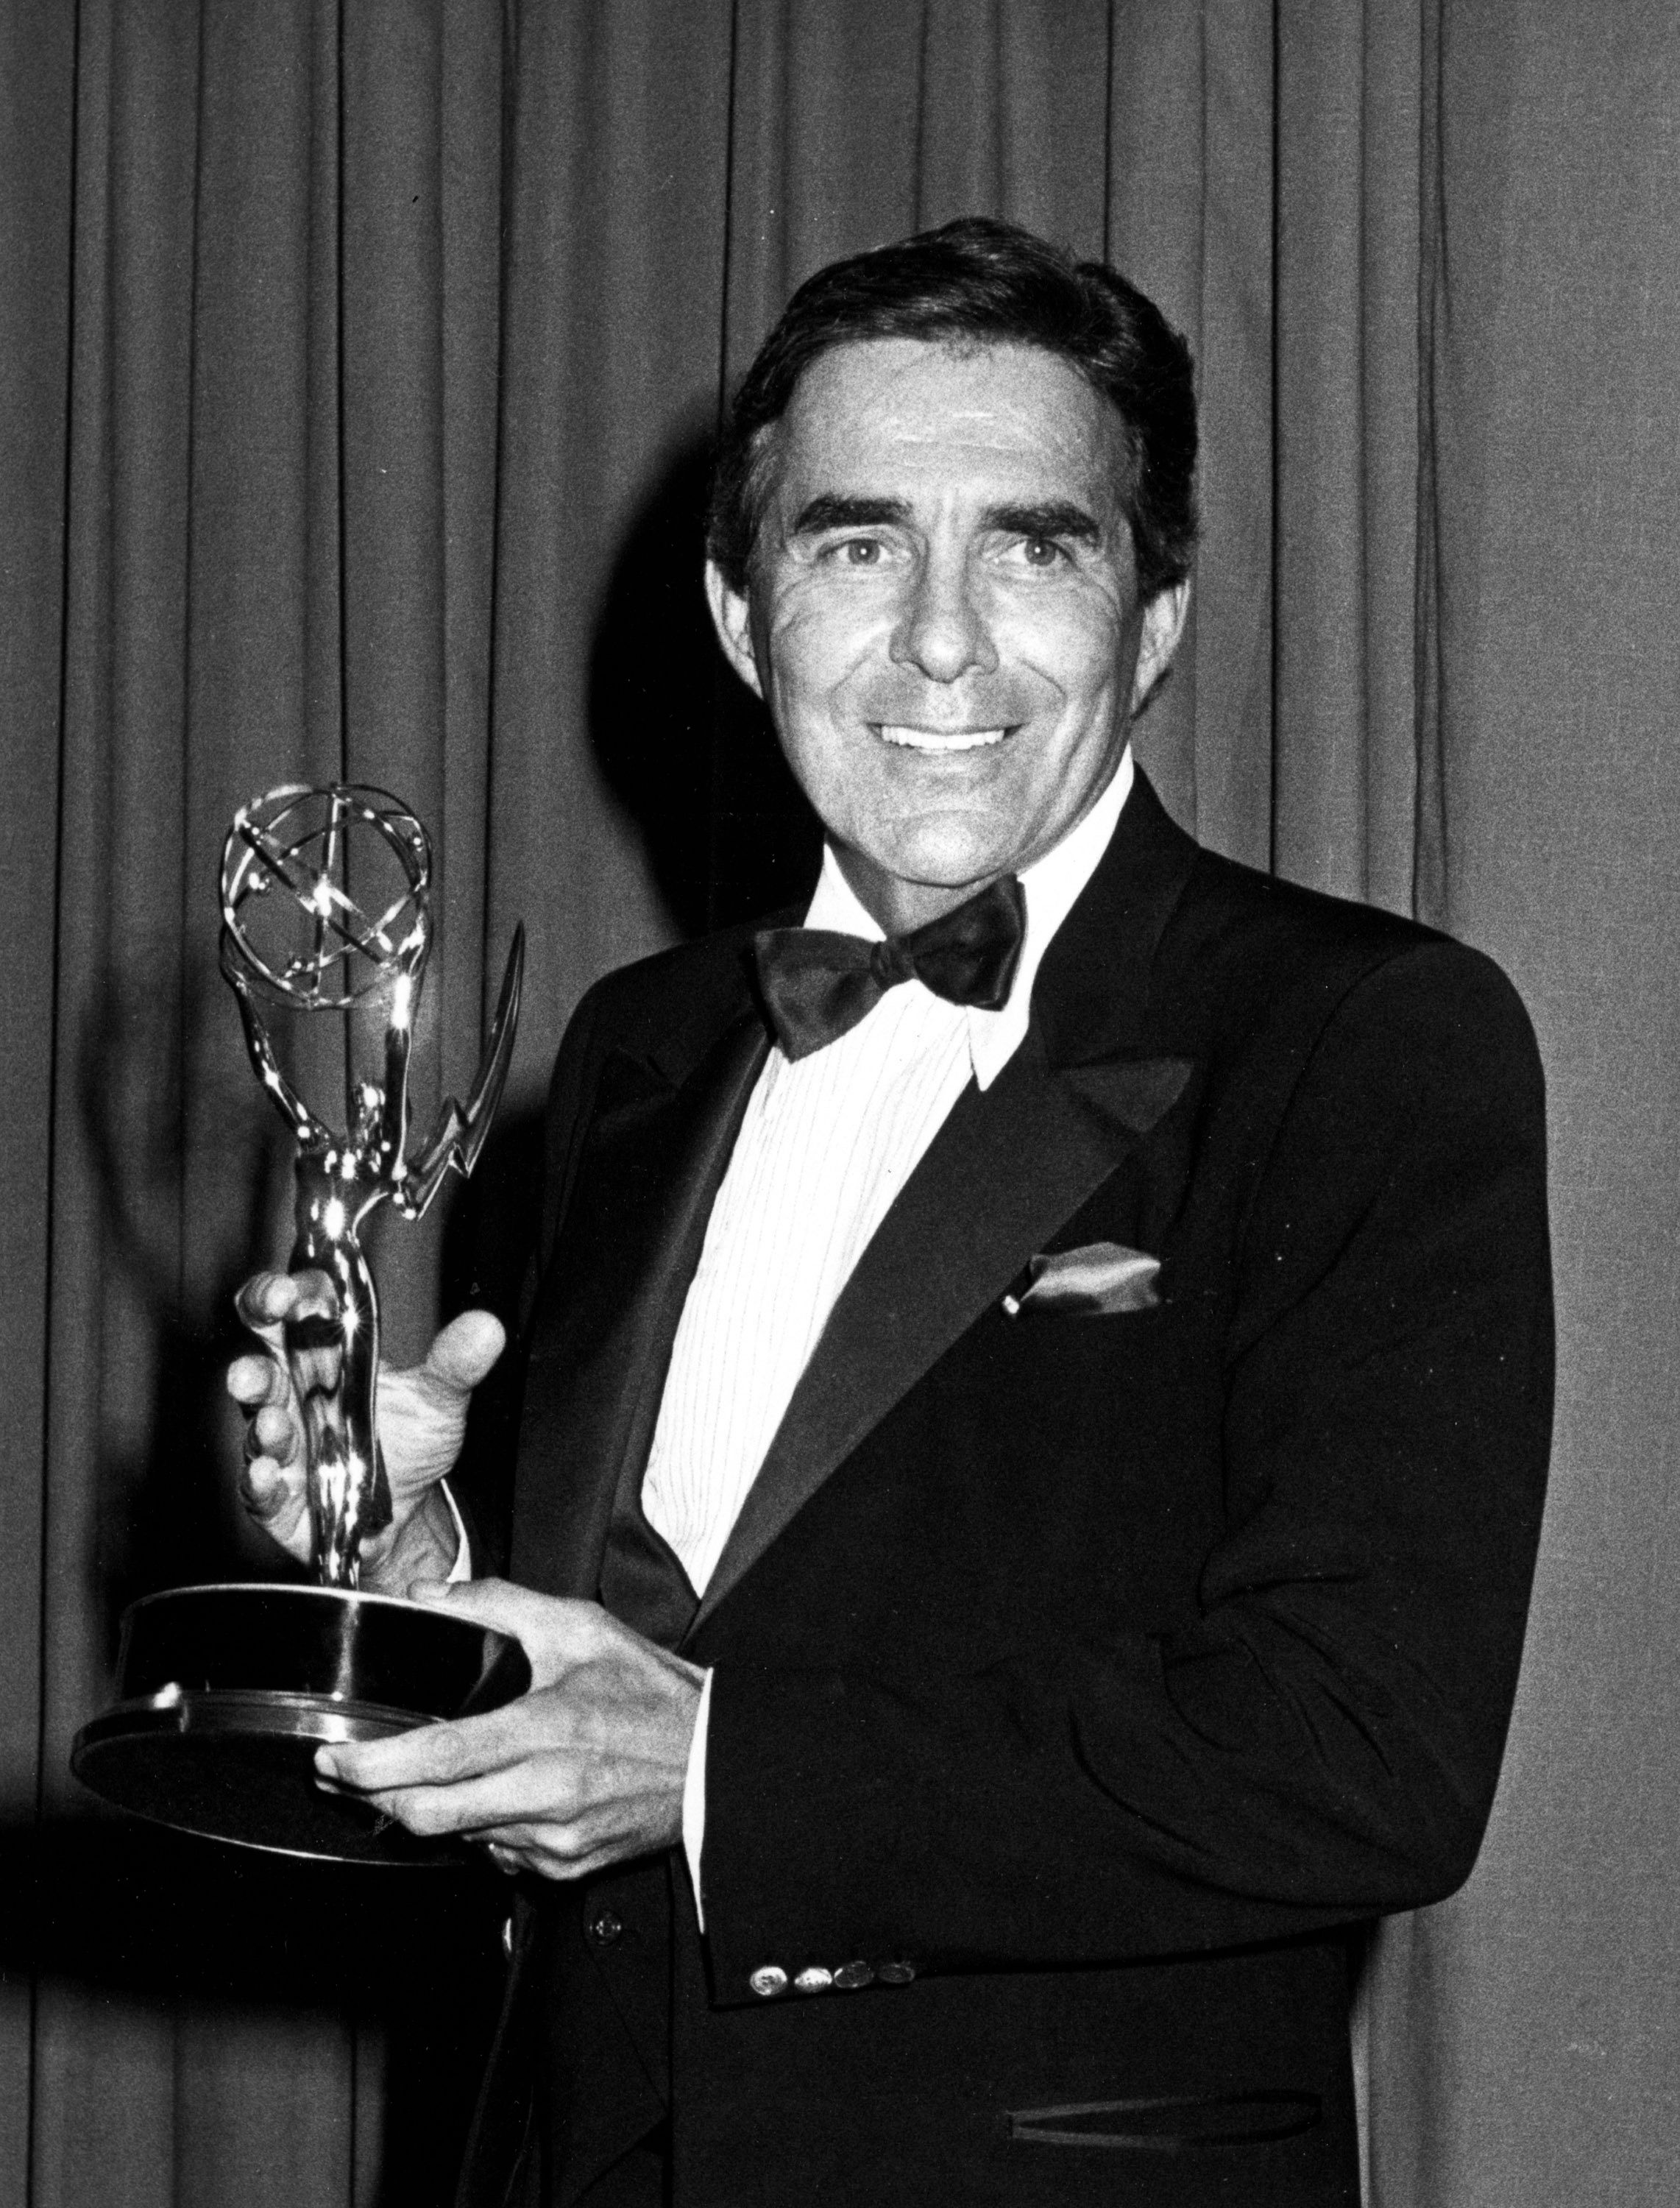 Actor Pat Harrington attends 36th Annual Primetime Emmy Awards on September 23, 1984 at the Pasadena Civic Auditorium in Pasadena, California. (Photo by Ron Galella, Ltd./WireImage)